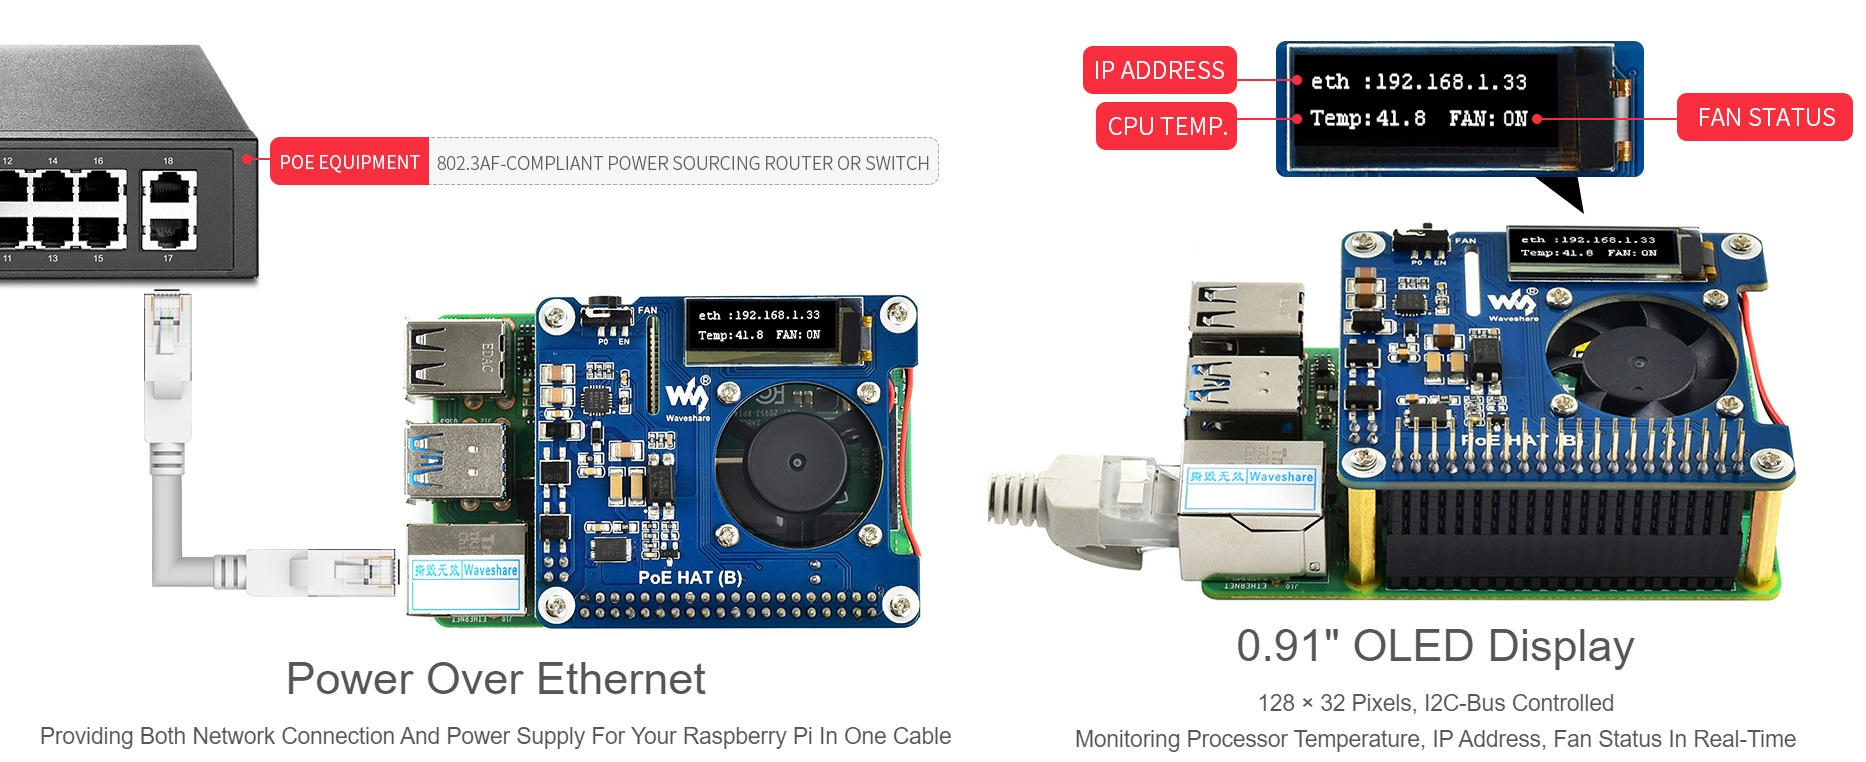 Mạch Waveshare Power over Ethernet PoE HAT (B) for Raspberry Pi